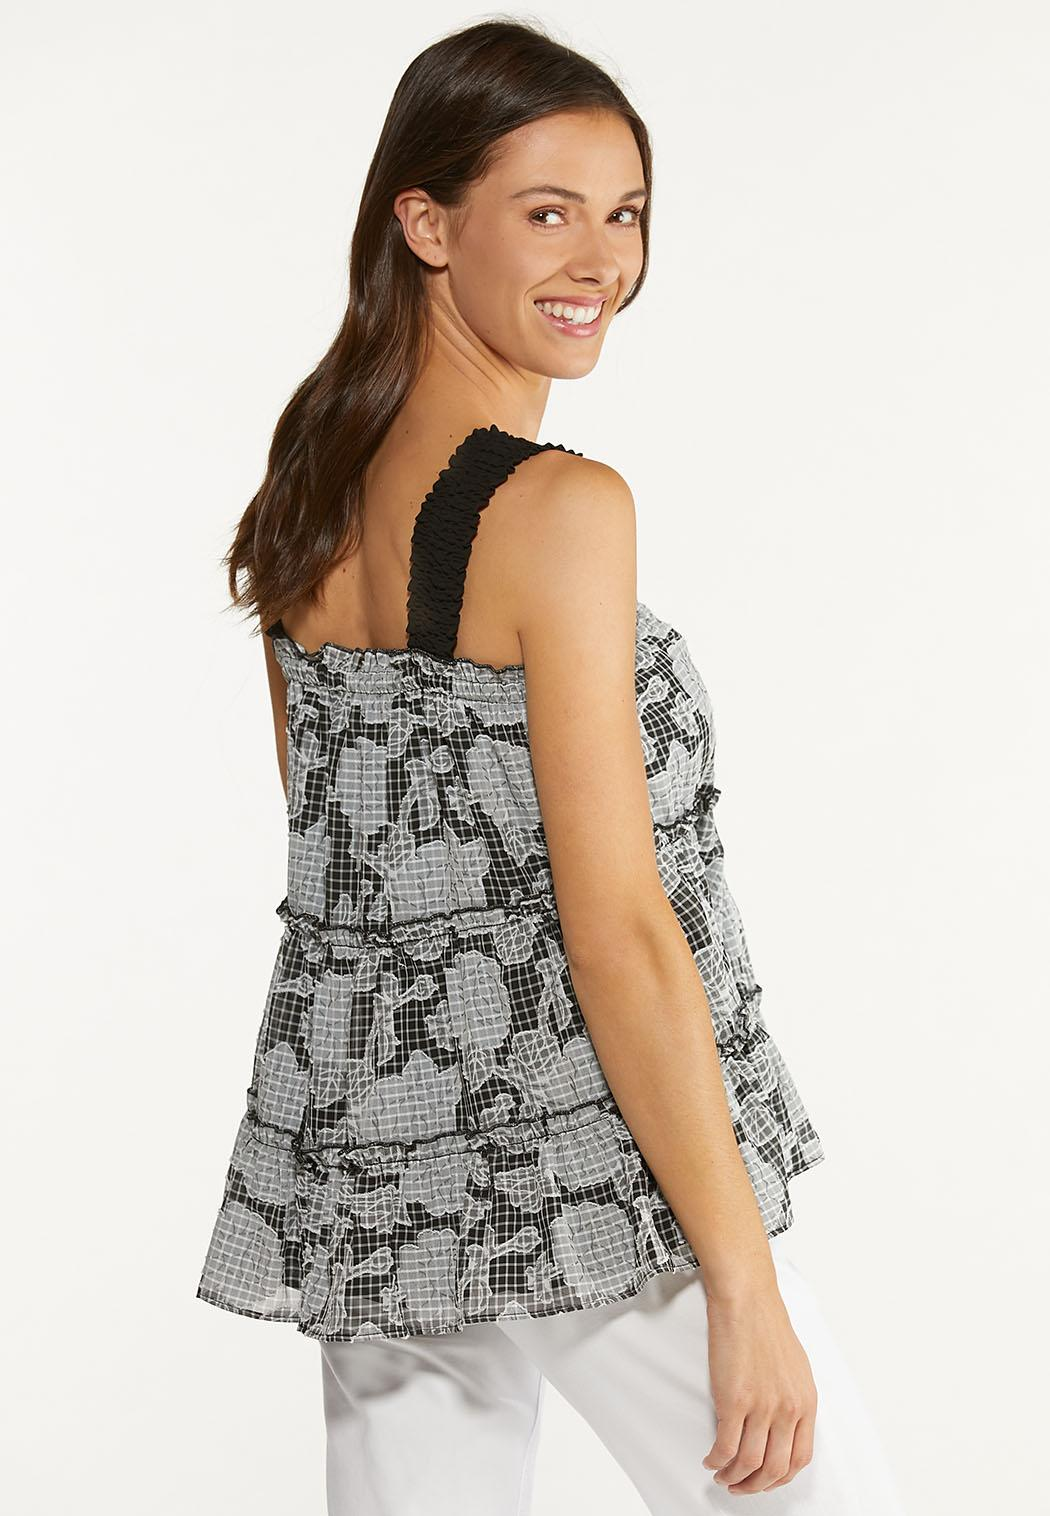 Ruffle Check Floral Top (Item #44626659)